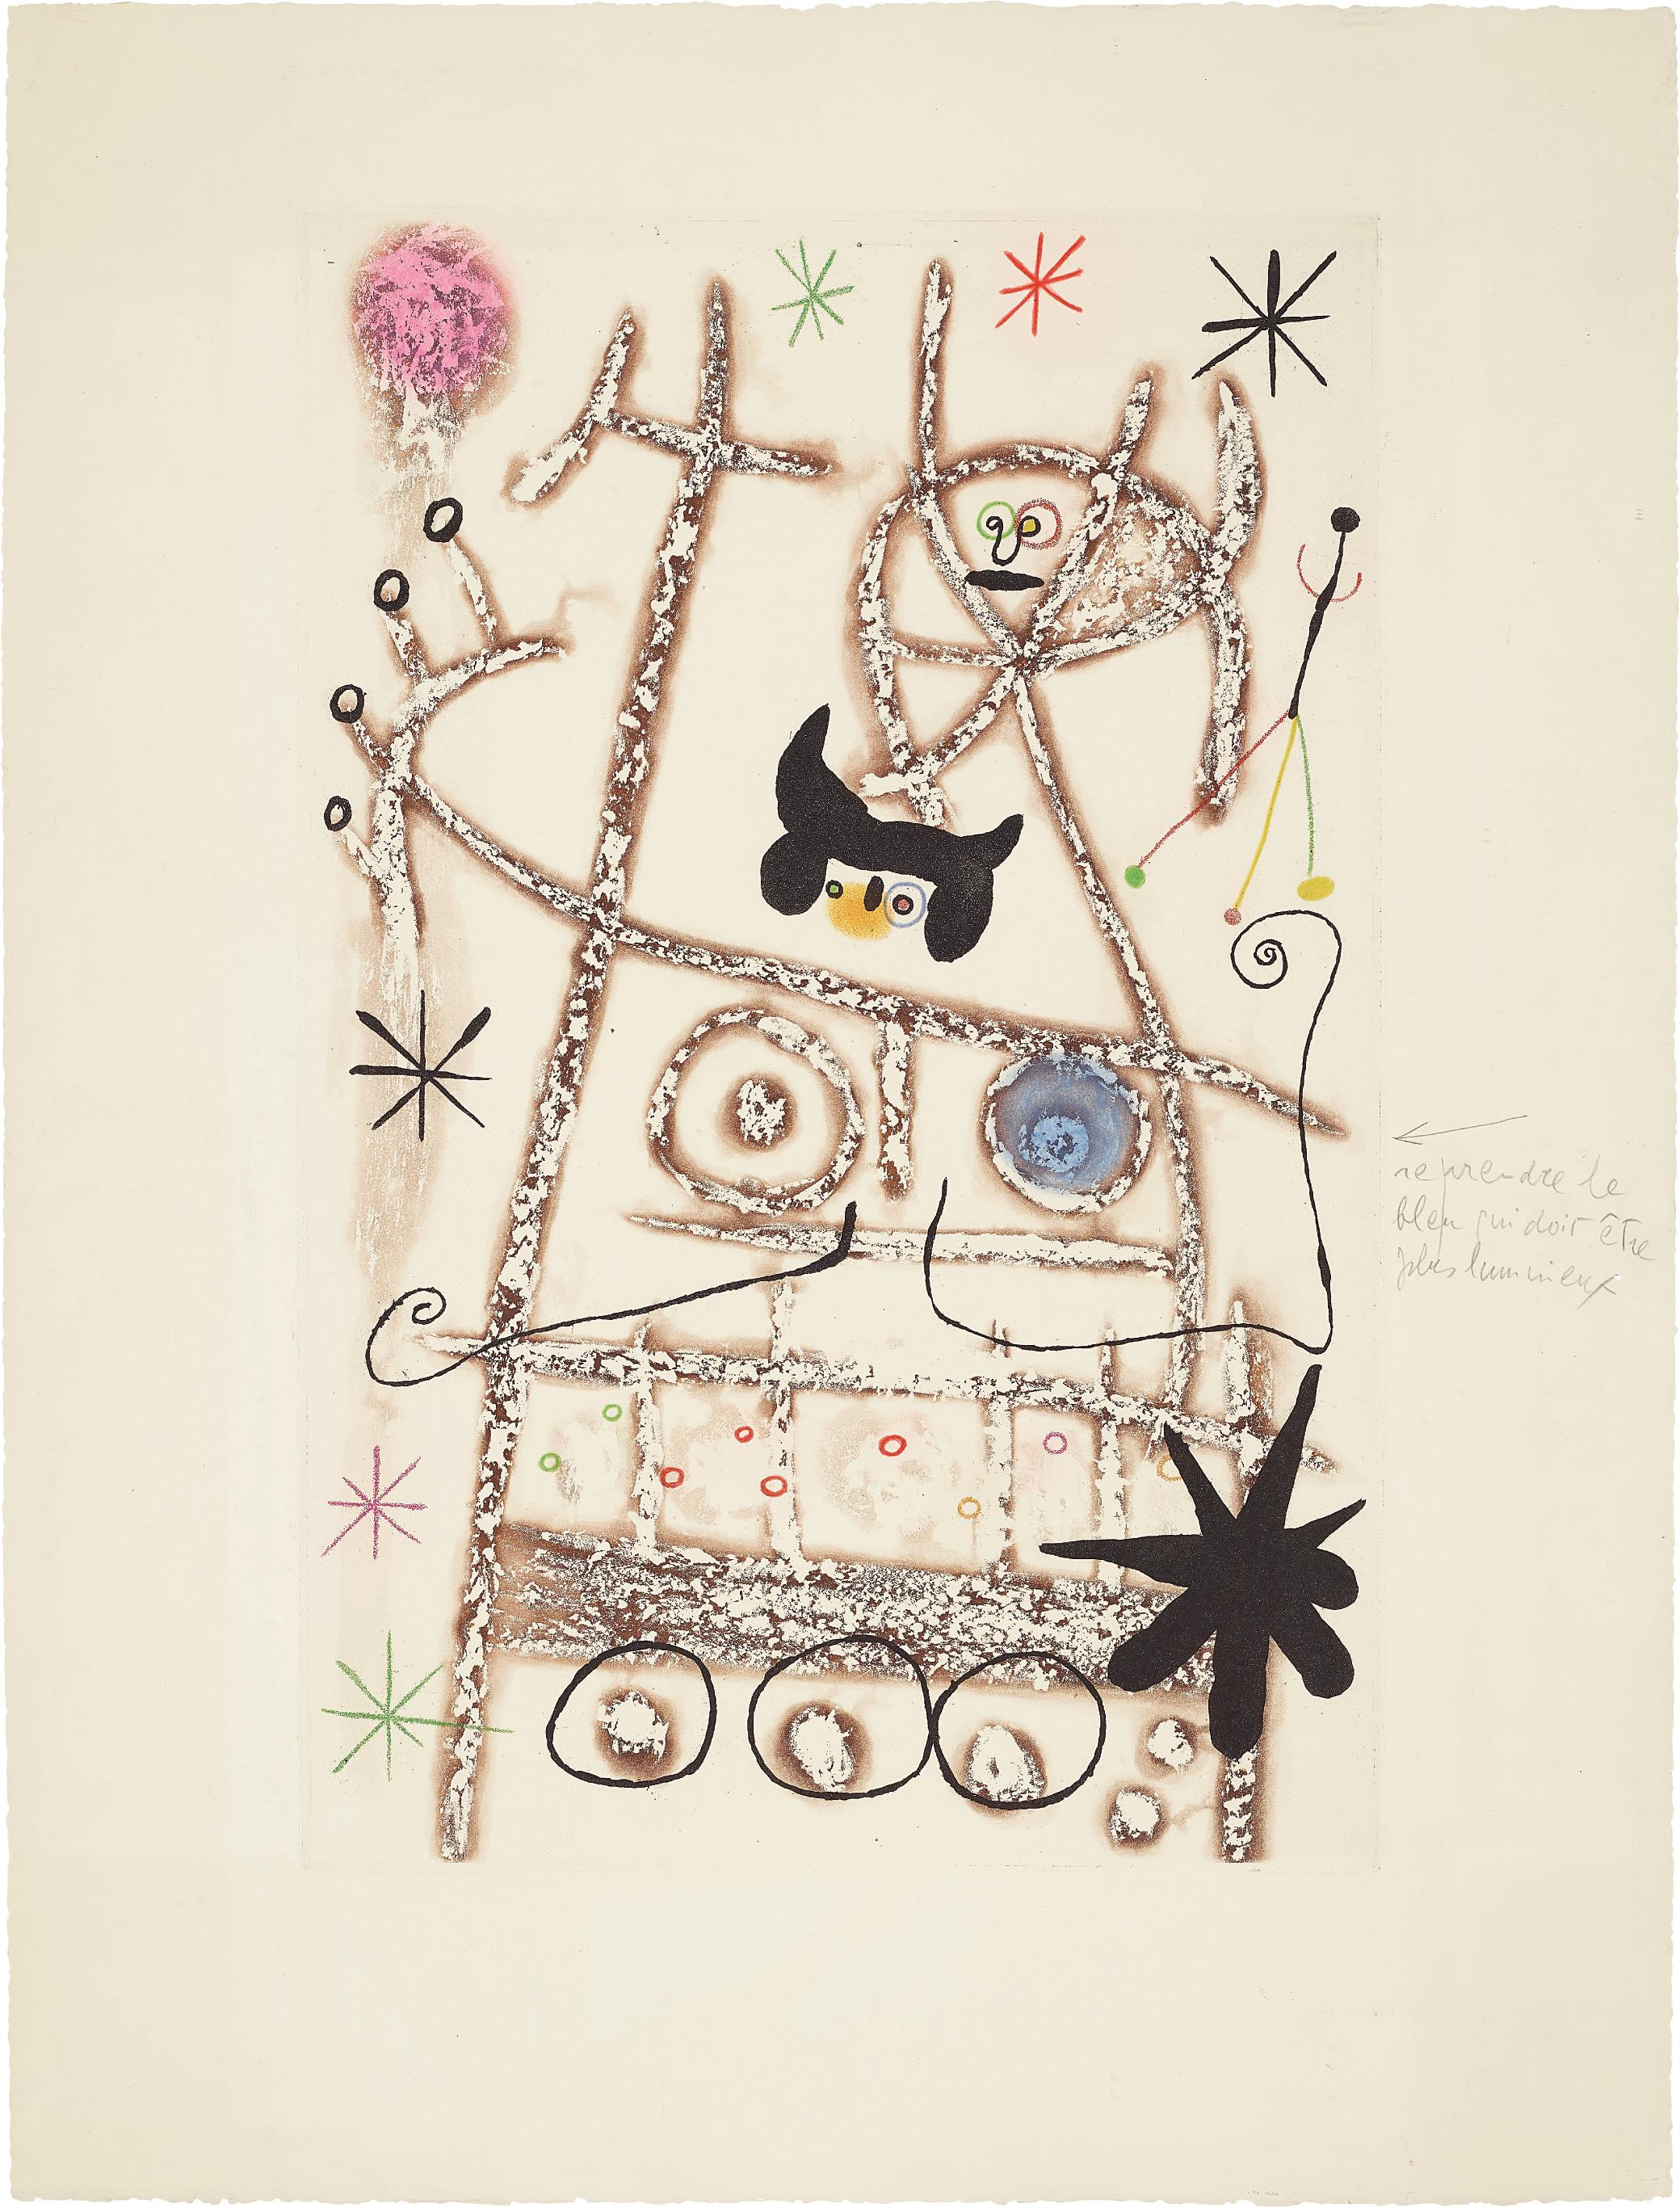 Joan Miro-Les Forestiers (Bistre) (The Foresters - Dark Brown)-1958